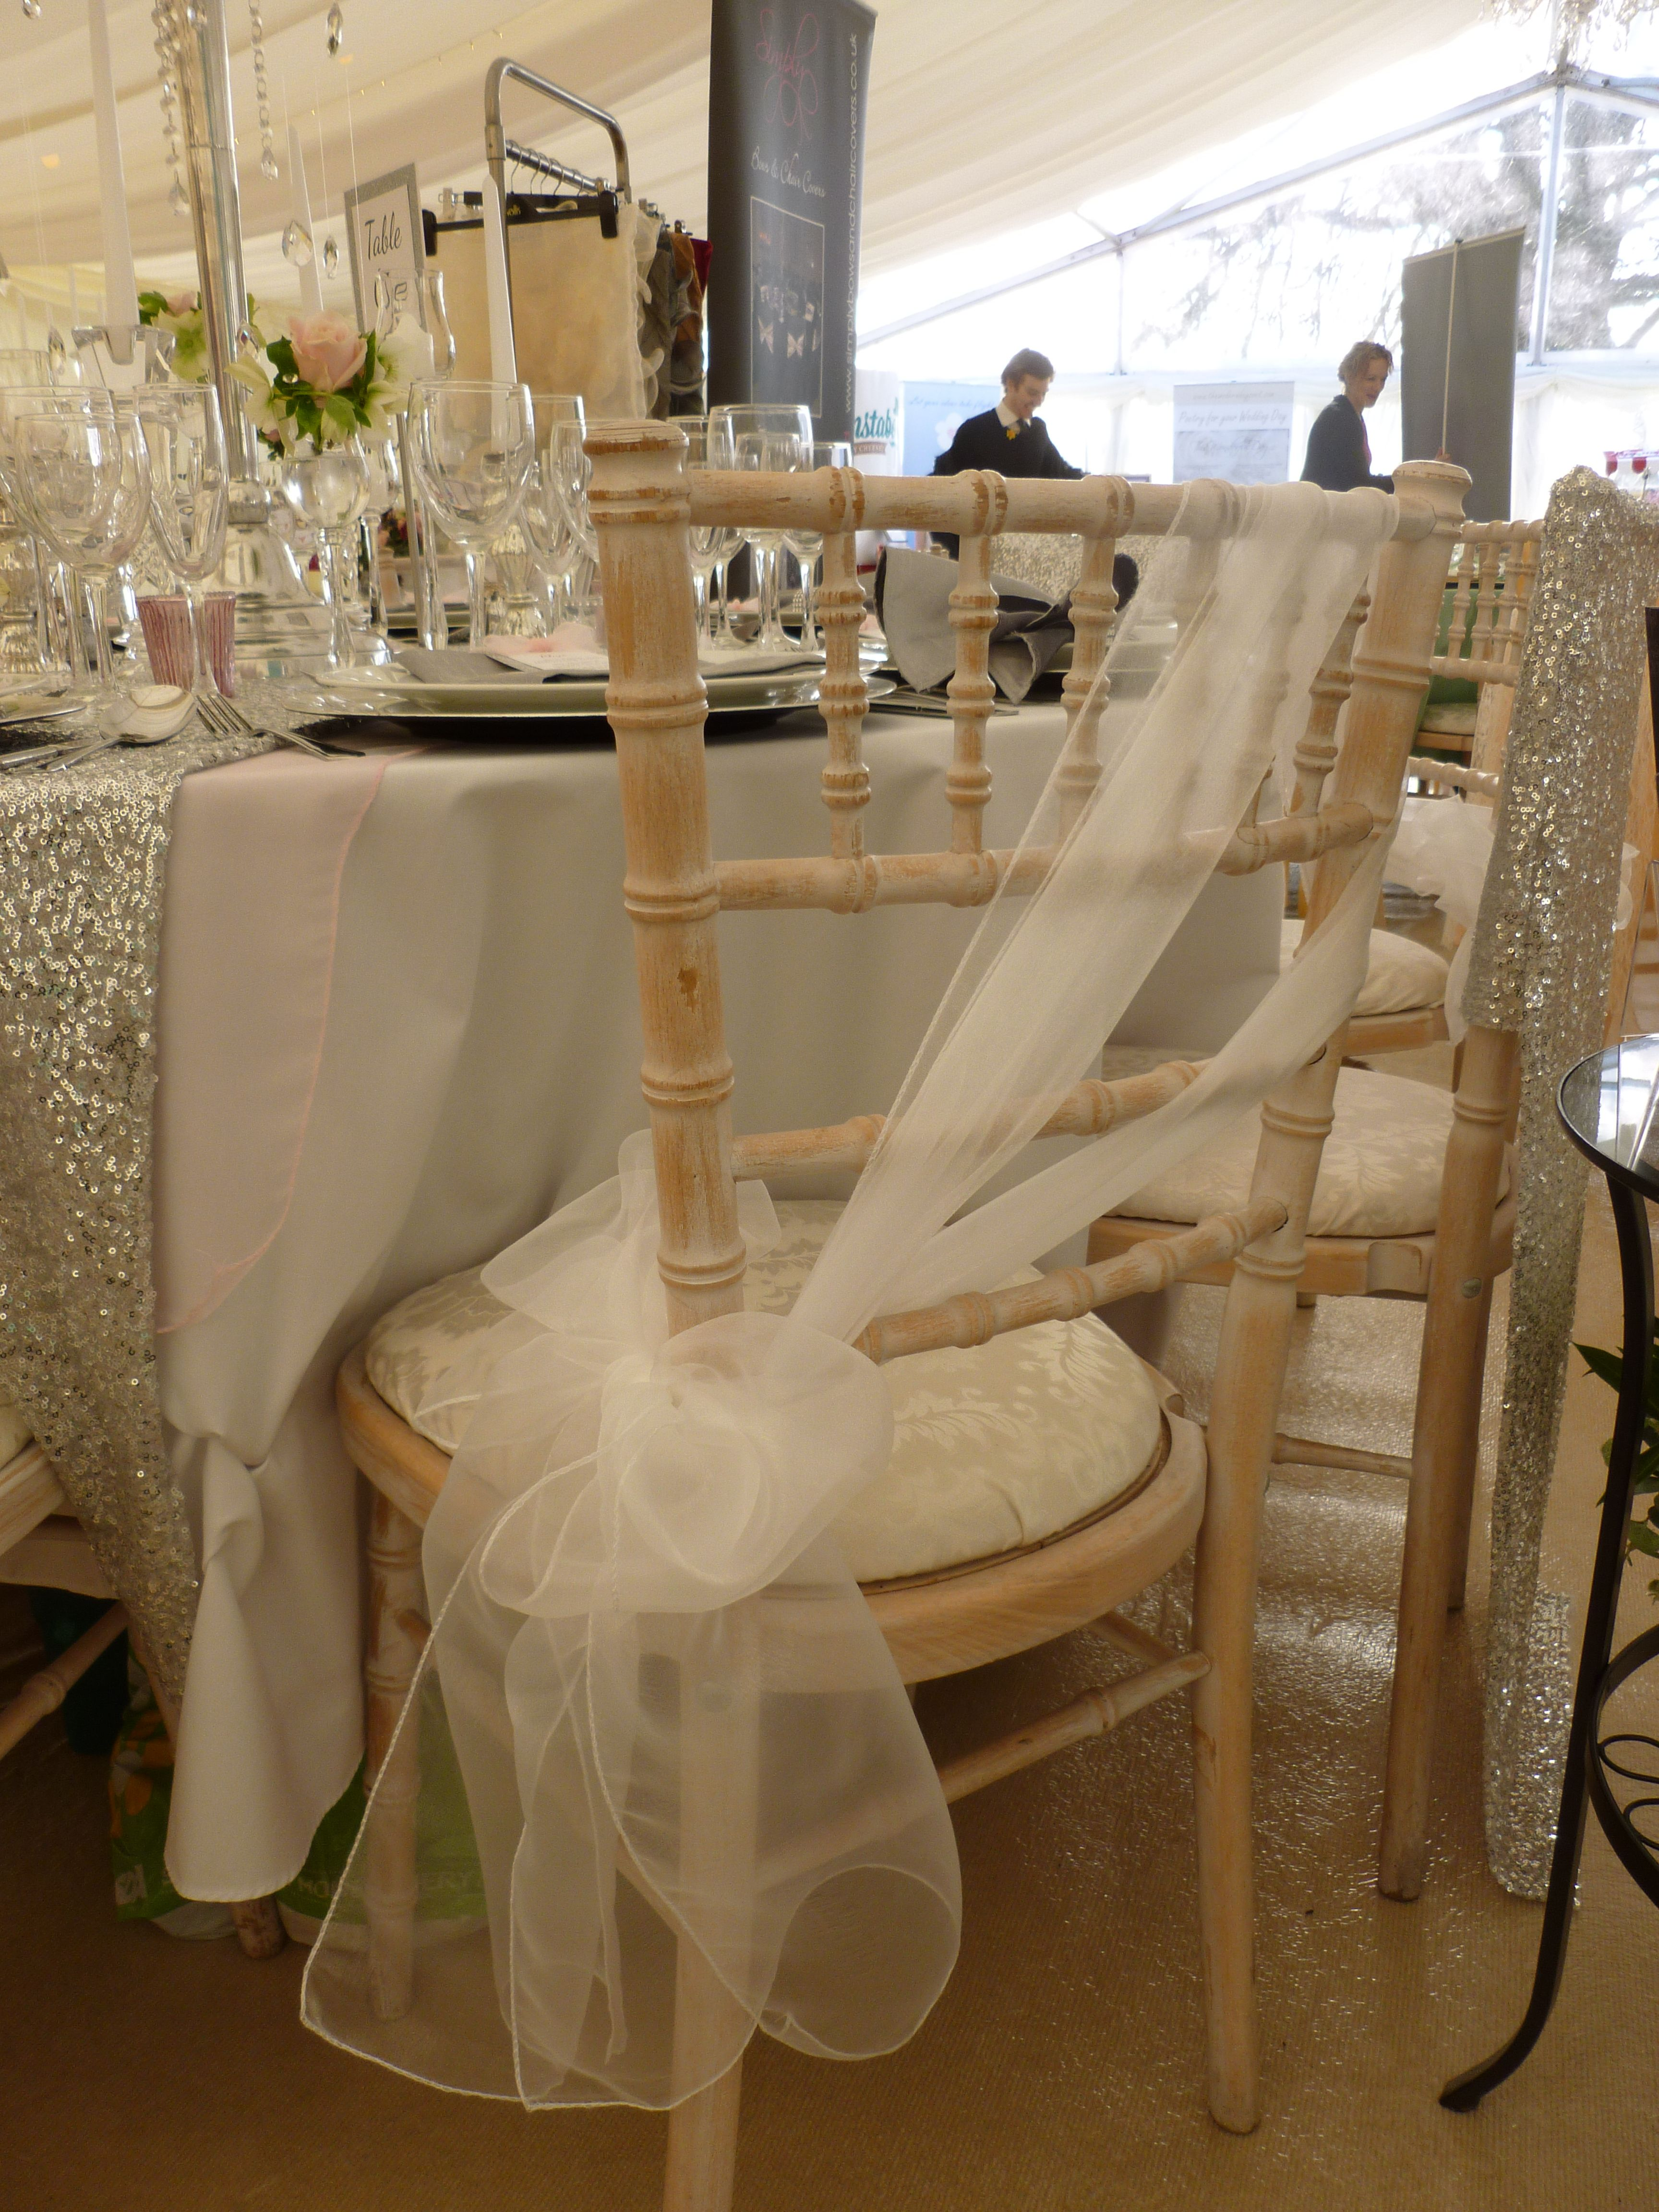 draping seats chairs traverse us would with chair chivari leelanau drape city you getting on day bay your charlevoix special shanahan chiavari are know from so rental call hear surprises a event to gold sweet we love give suttons and county castle wedding what no